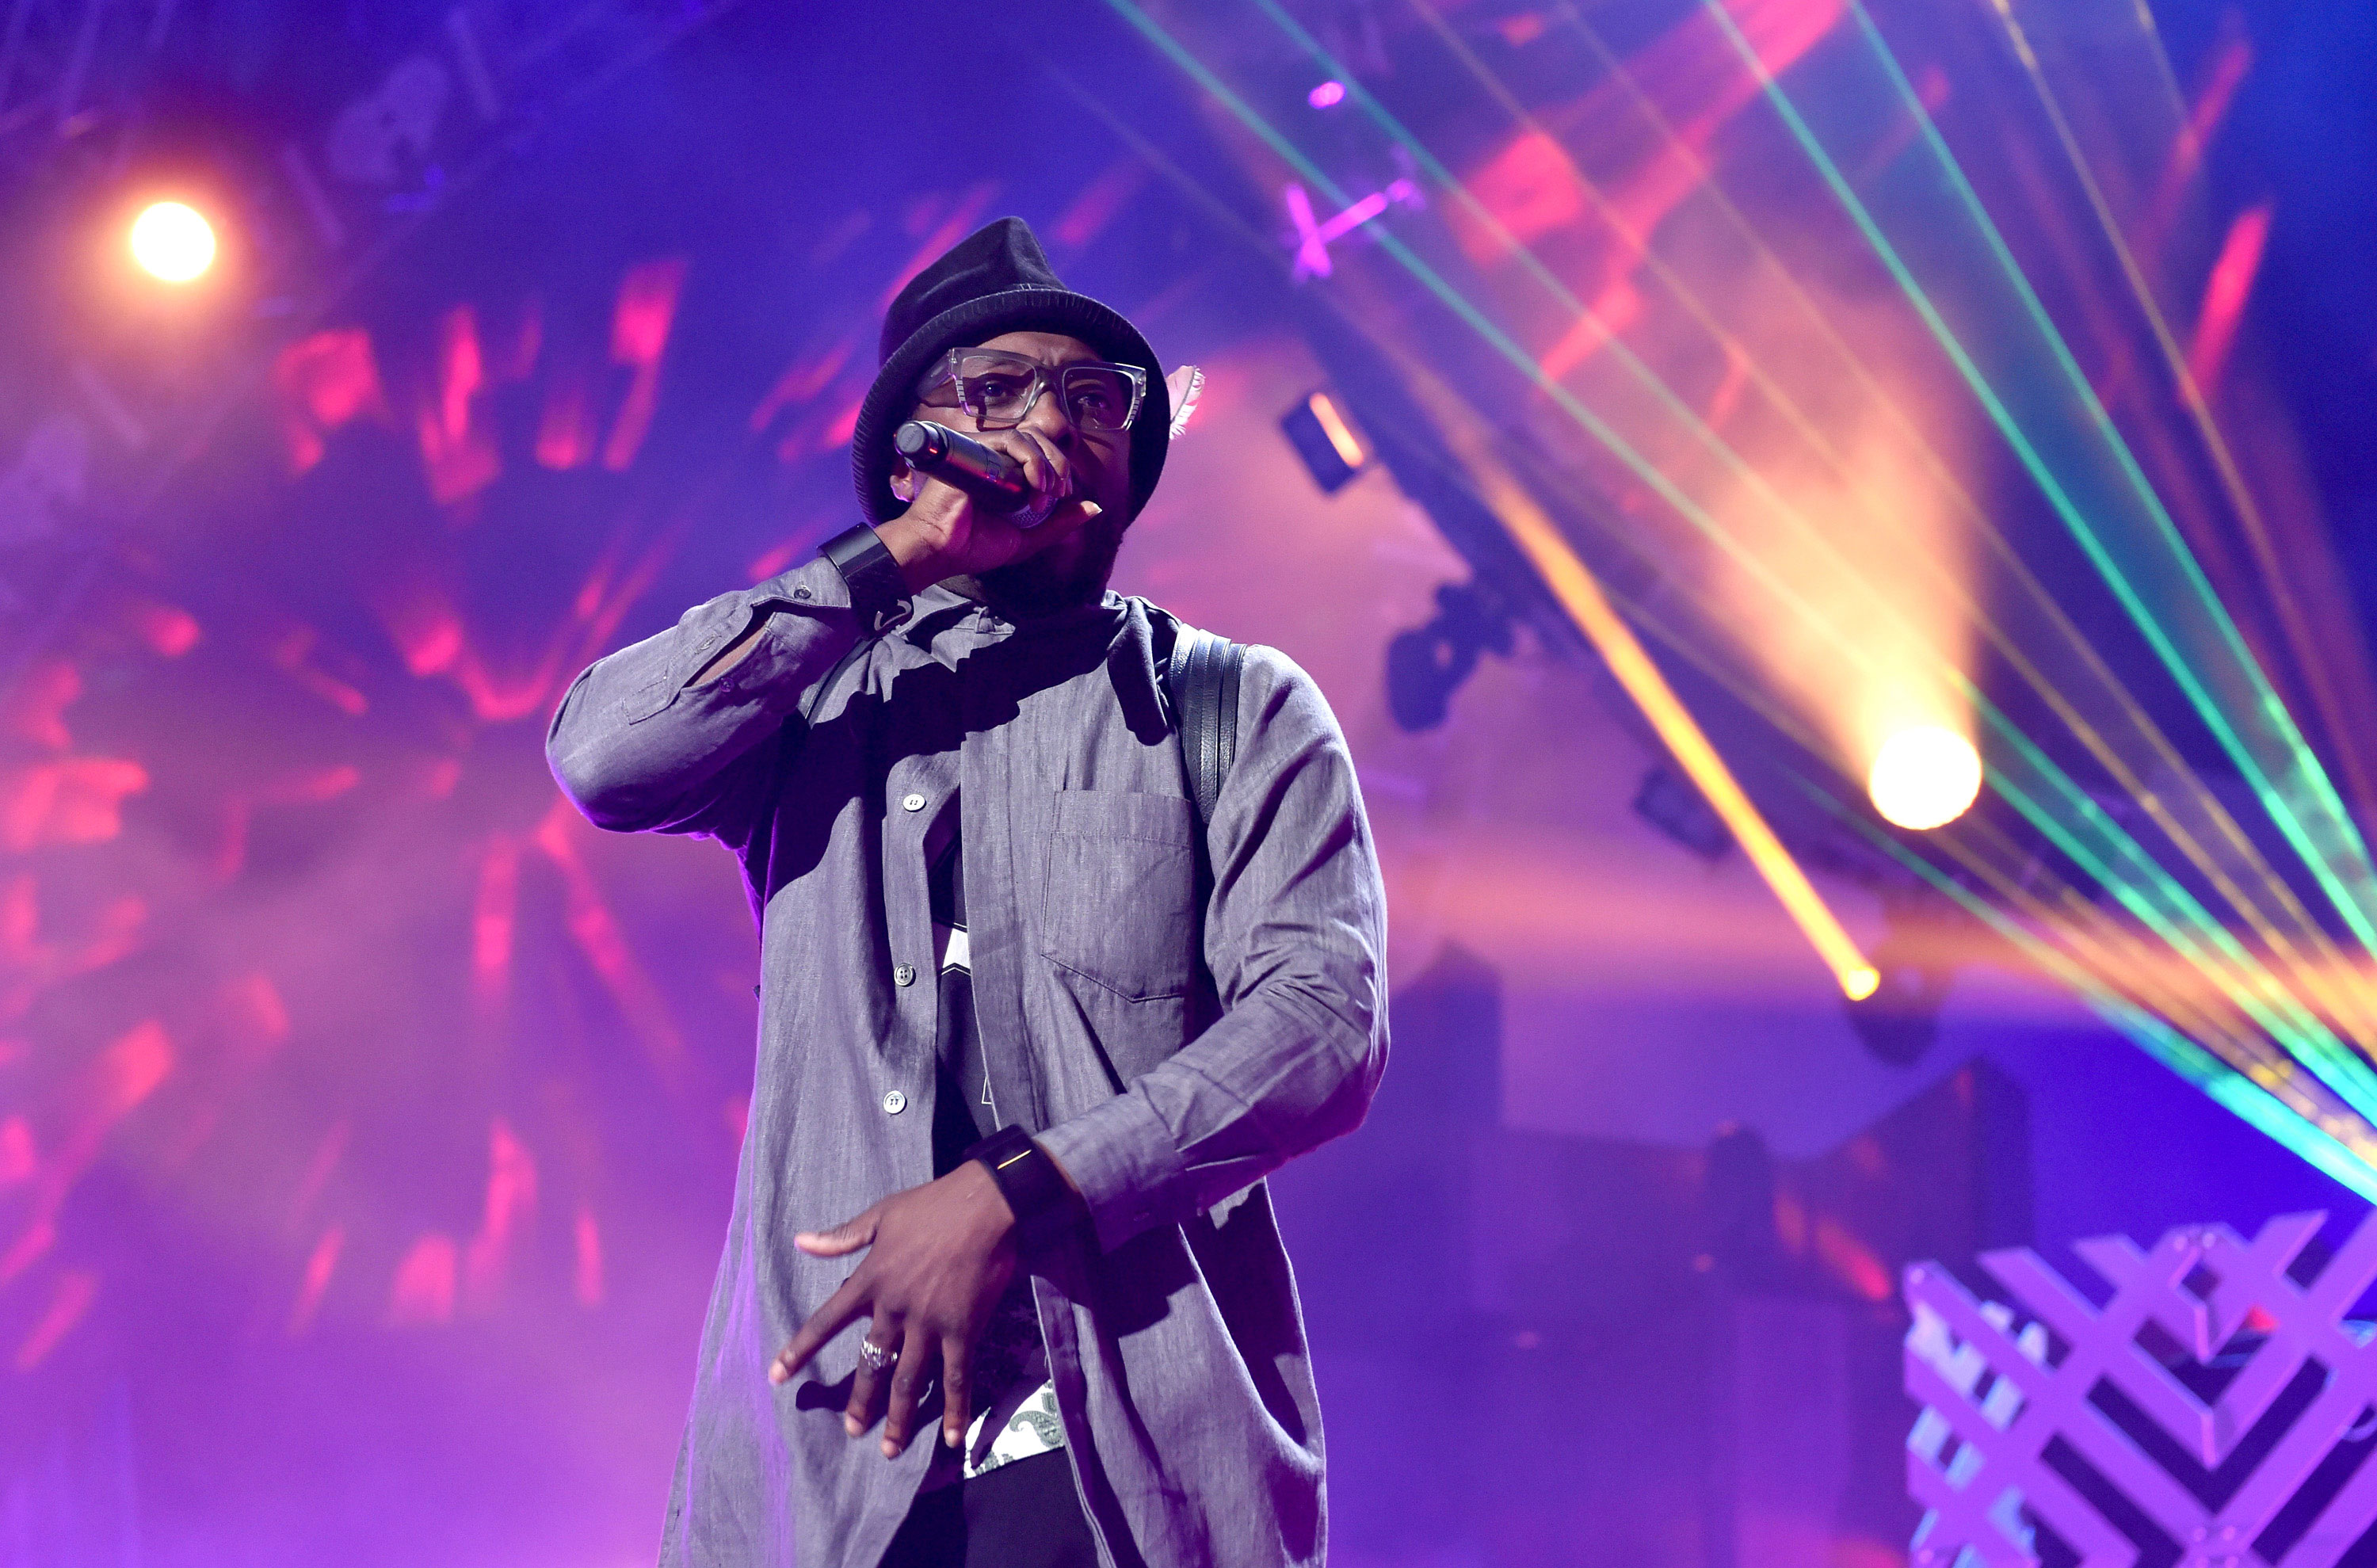 will.i.am performing onstage.